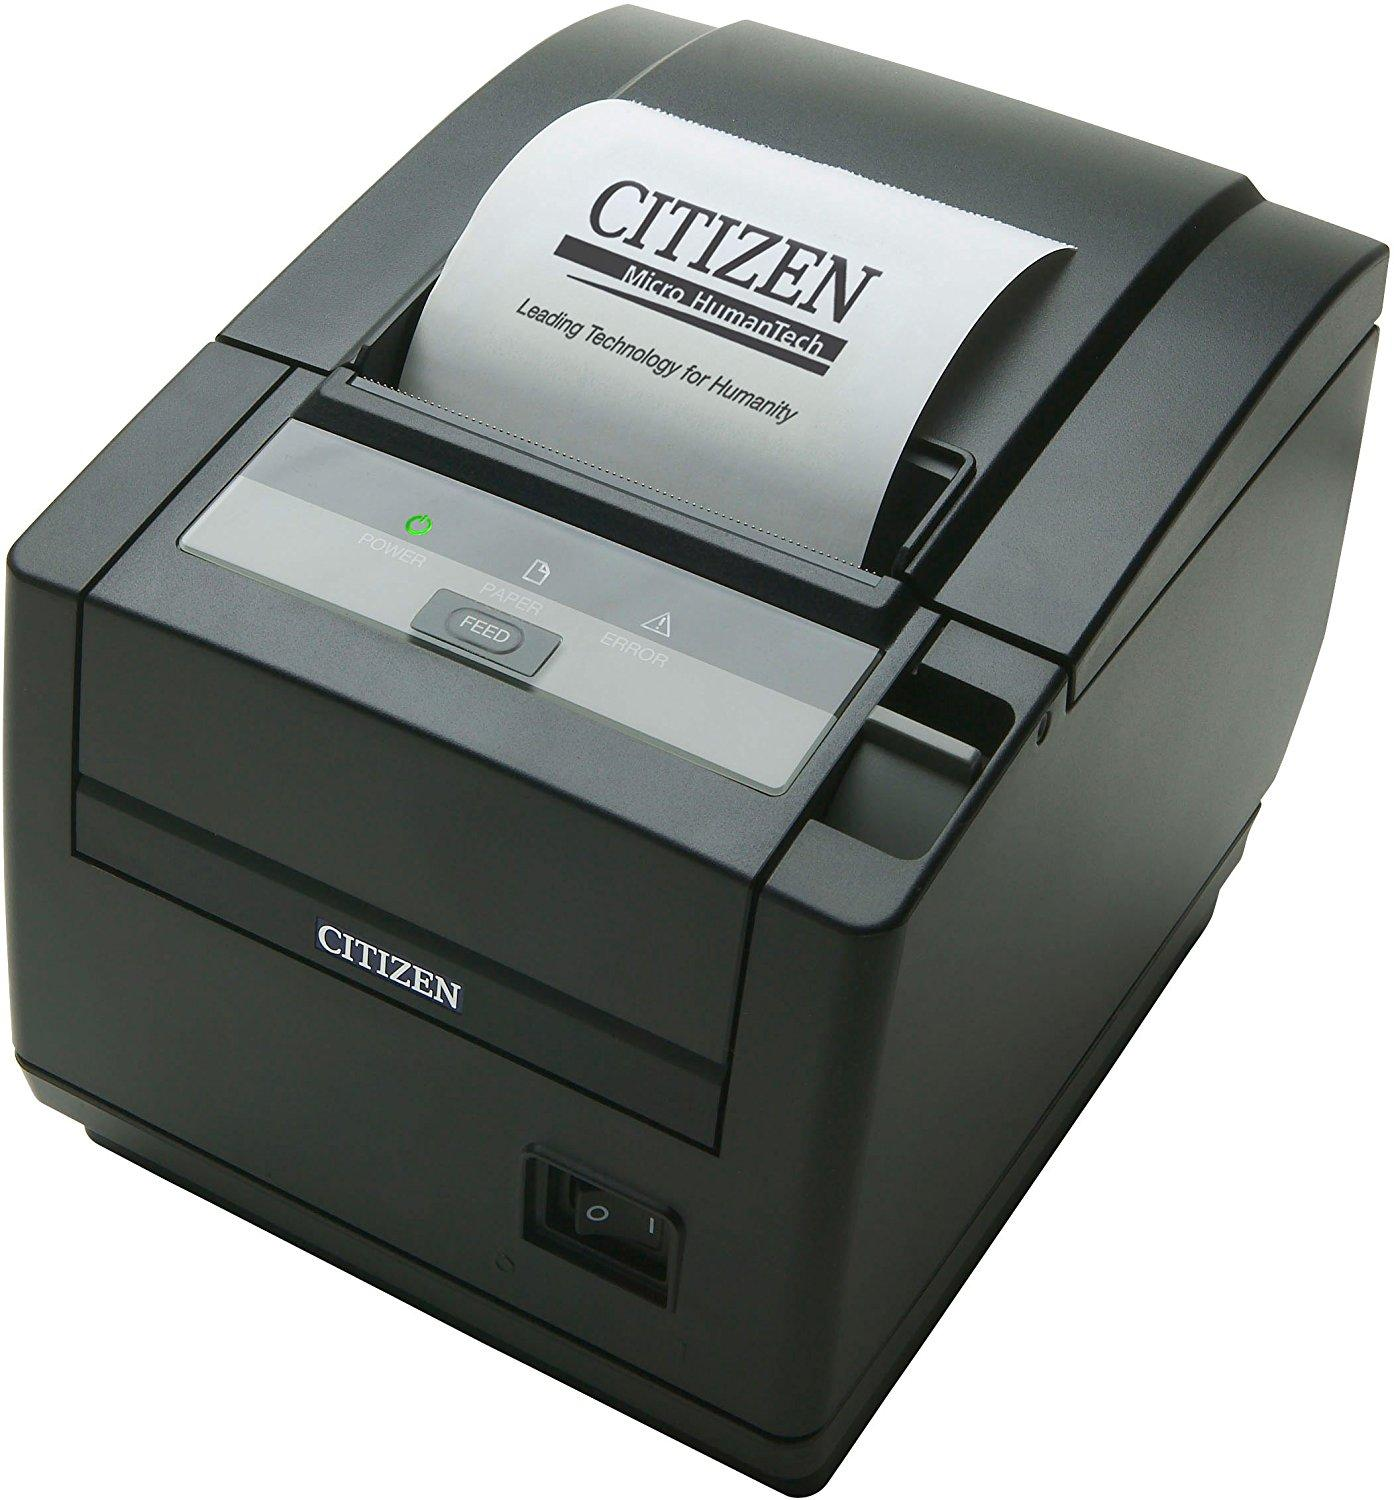 Citizen CT-S601II; No interface, Black